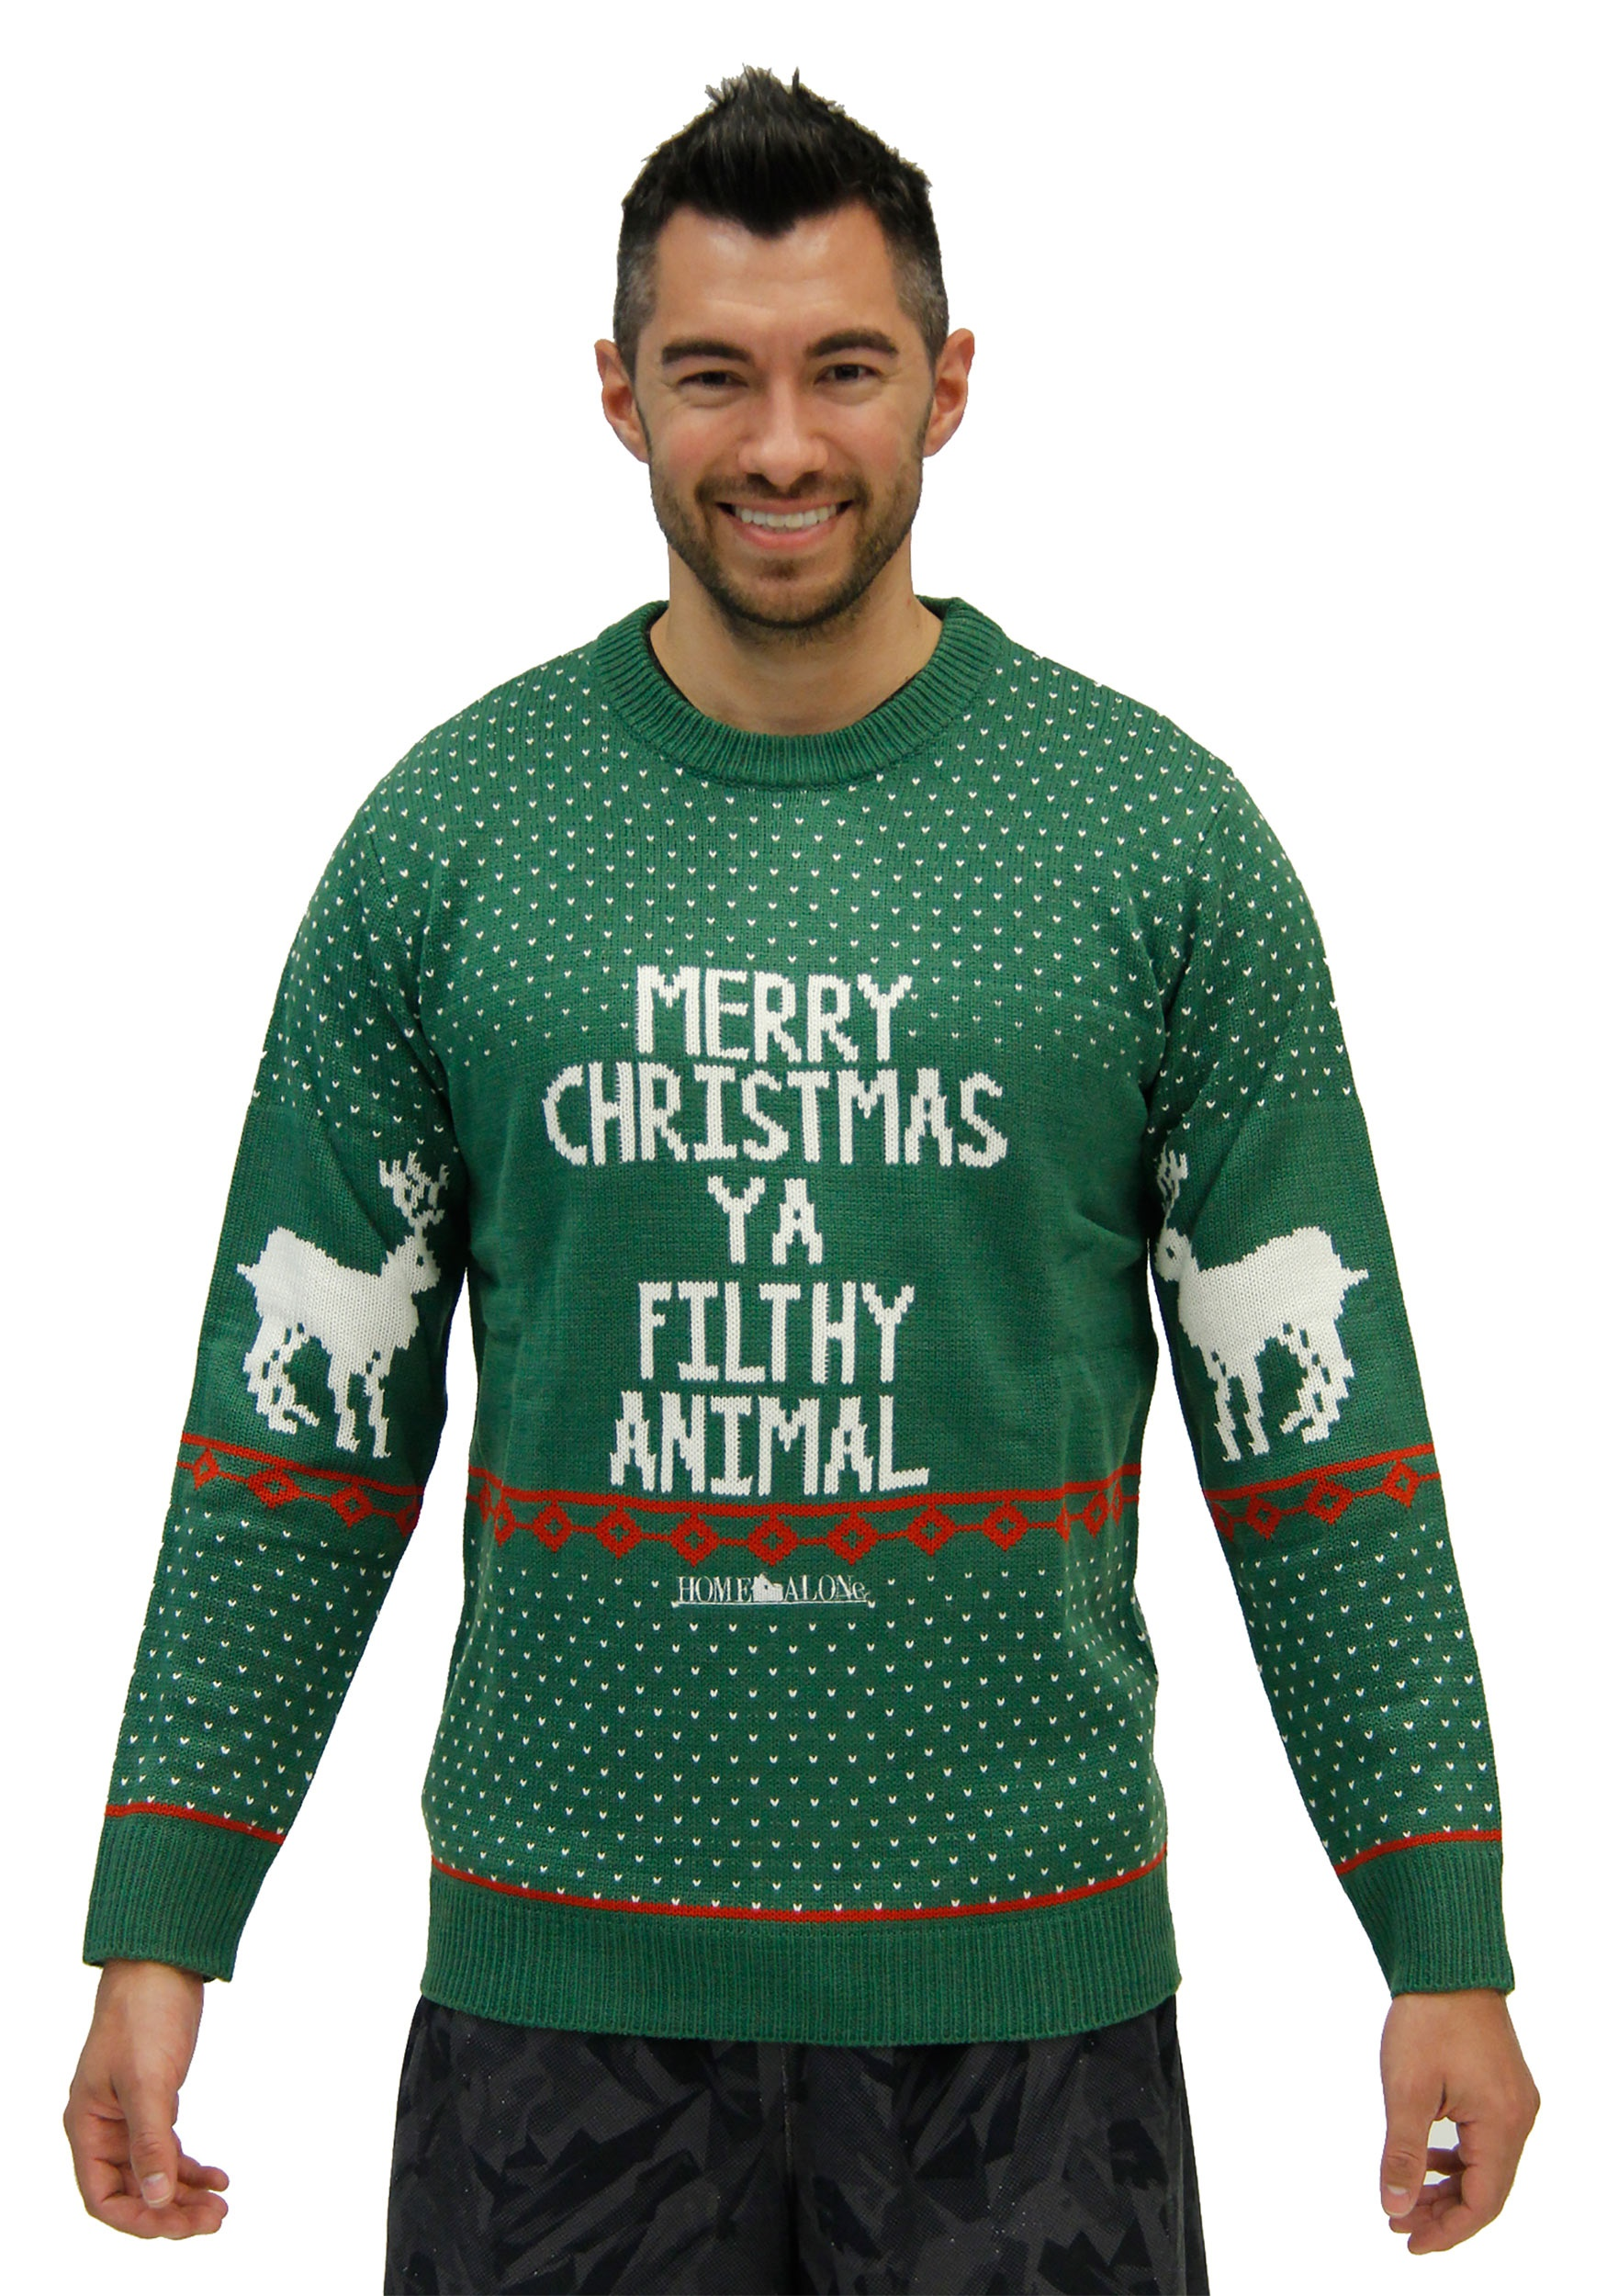 801fc059 Home Alone Green Merry Christmas Ya Filthy Animal Ugly X-Mas Sweater